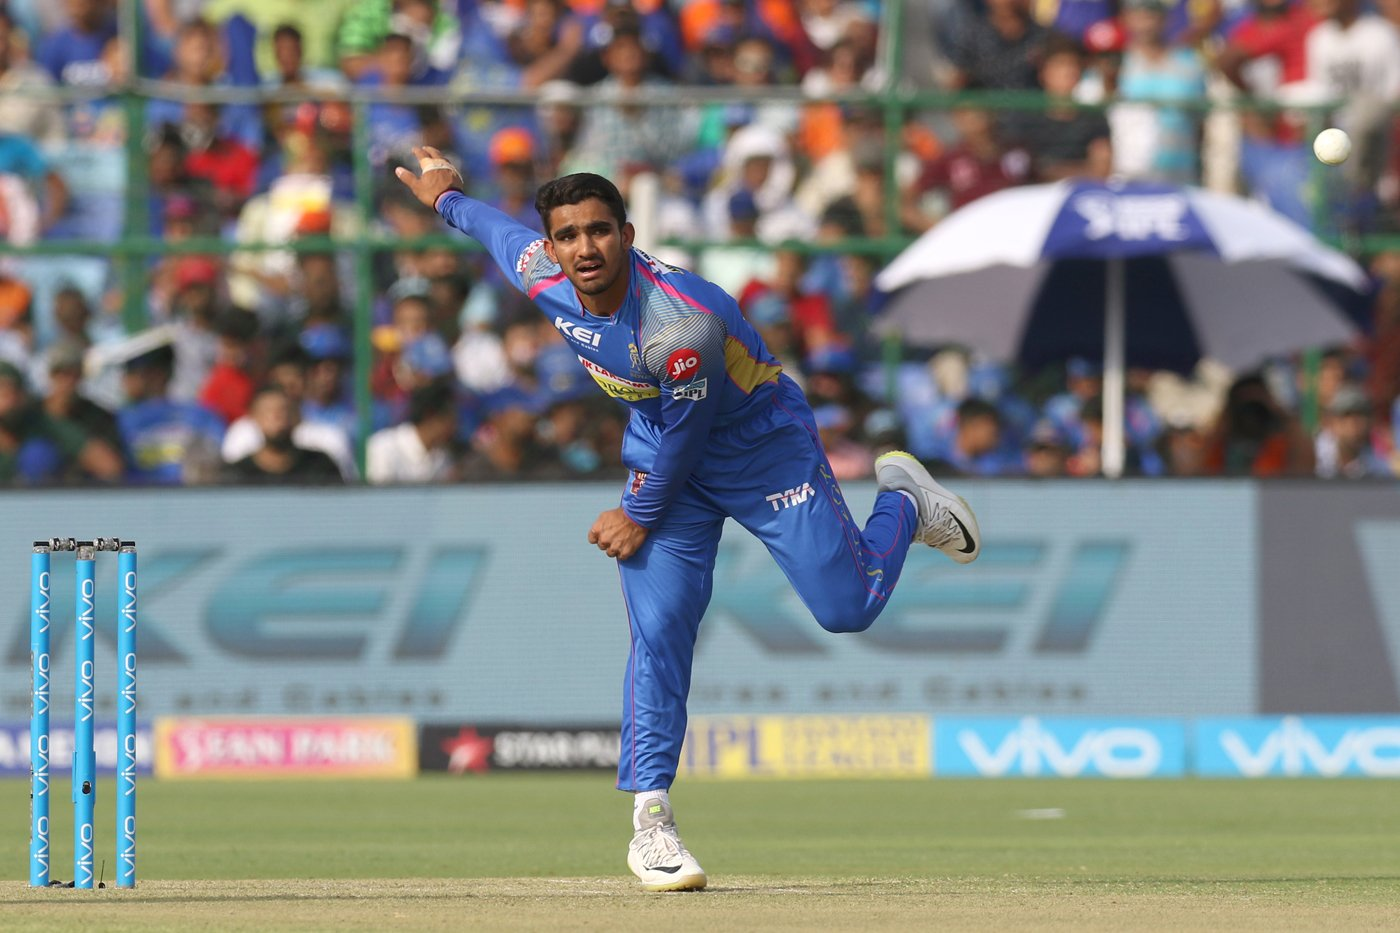 Mahipal Lomror: At the age of 11, father distanced from himself, became a cricketer in the support of his grandmother, now played an amazing inning 1